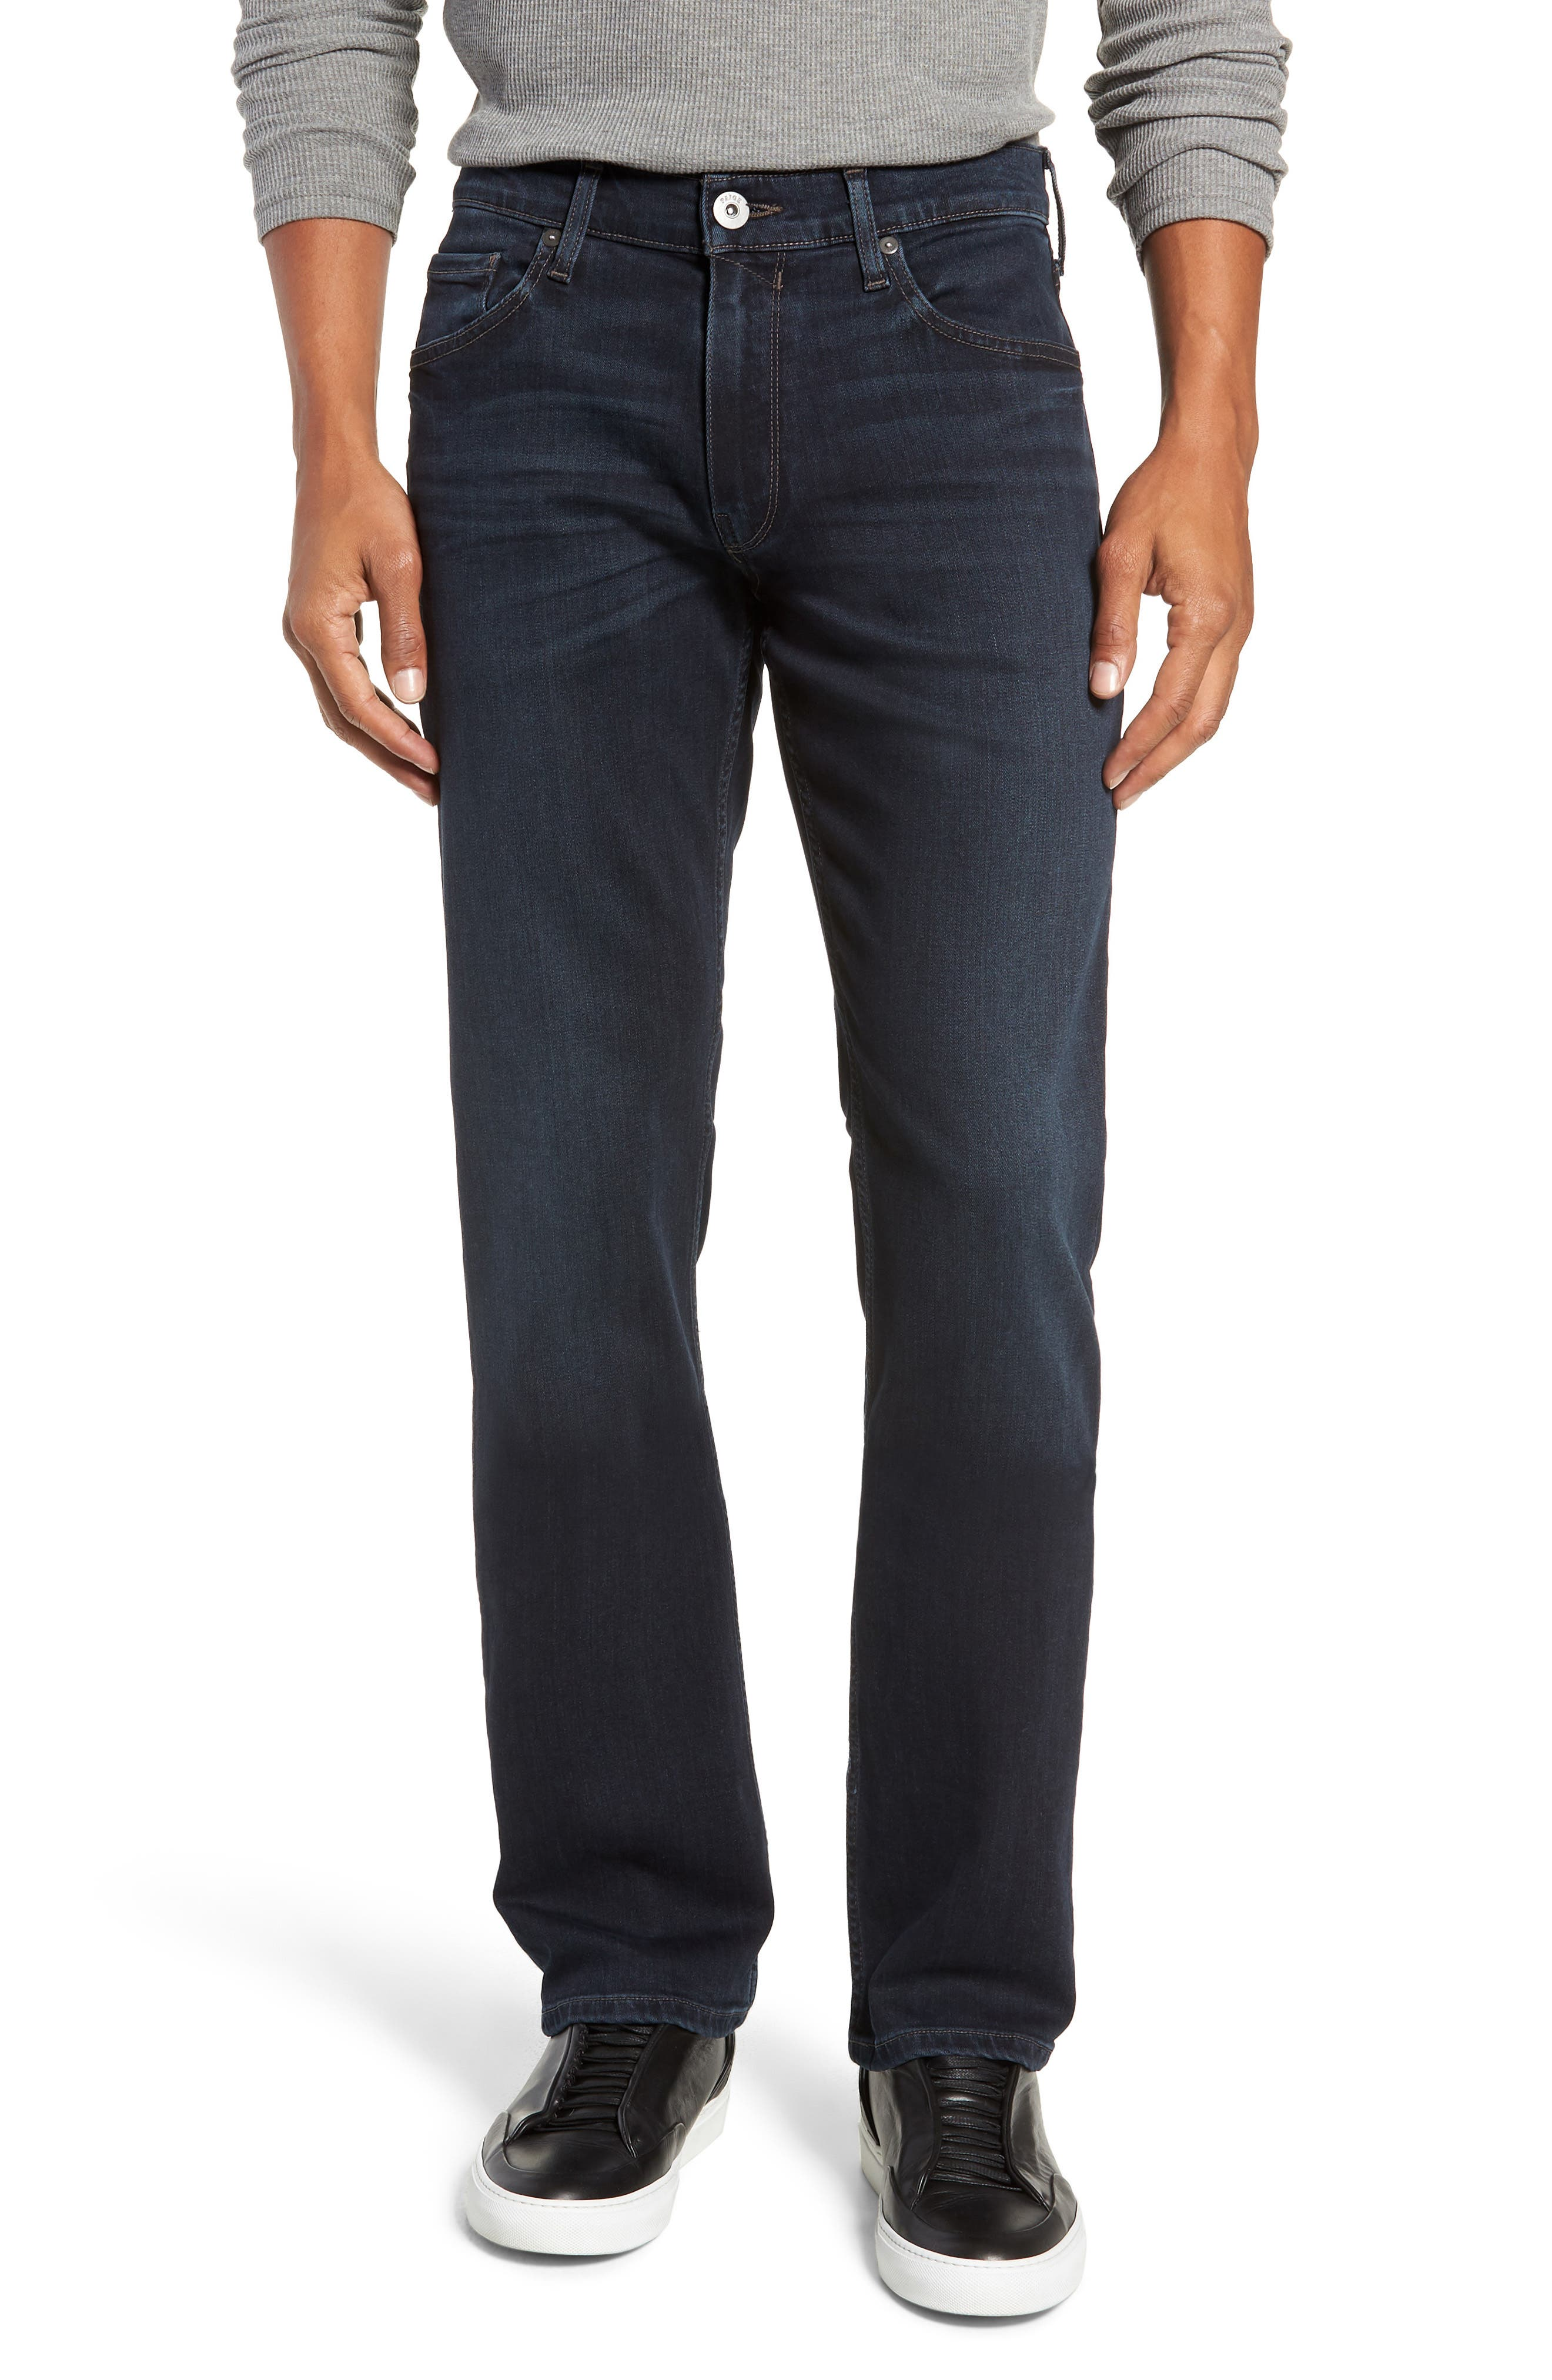 Transcend - Normandie Straight Leg Jeans,                             Main thumbnail 1, color,                             LARK